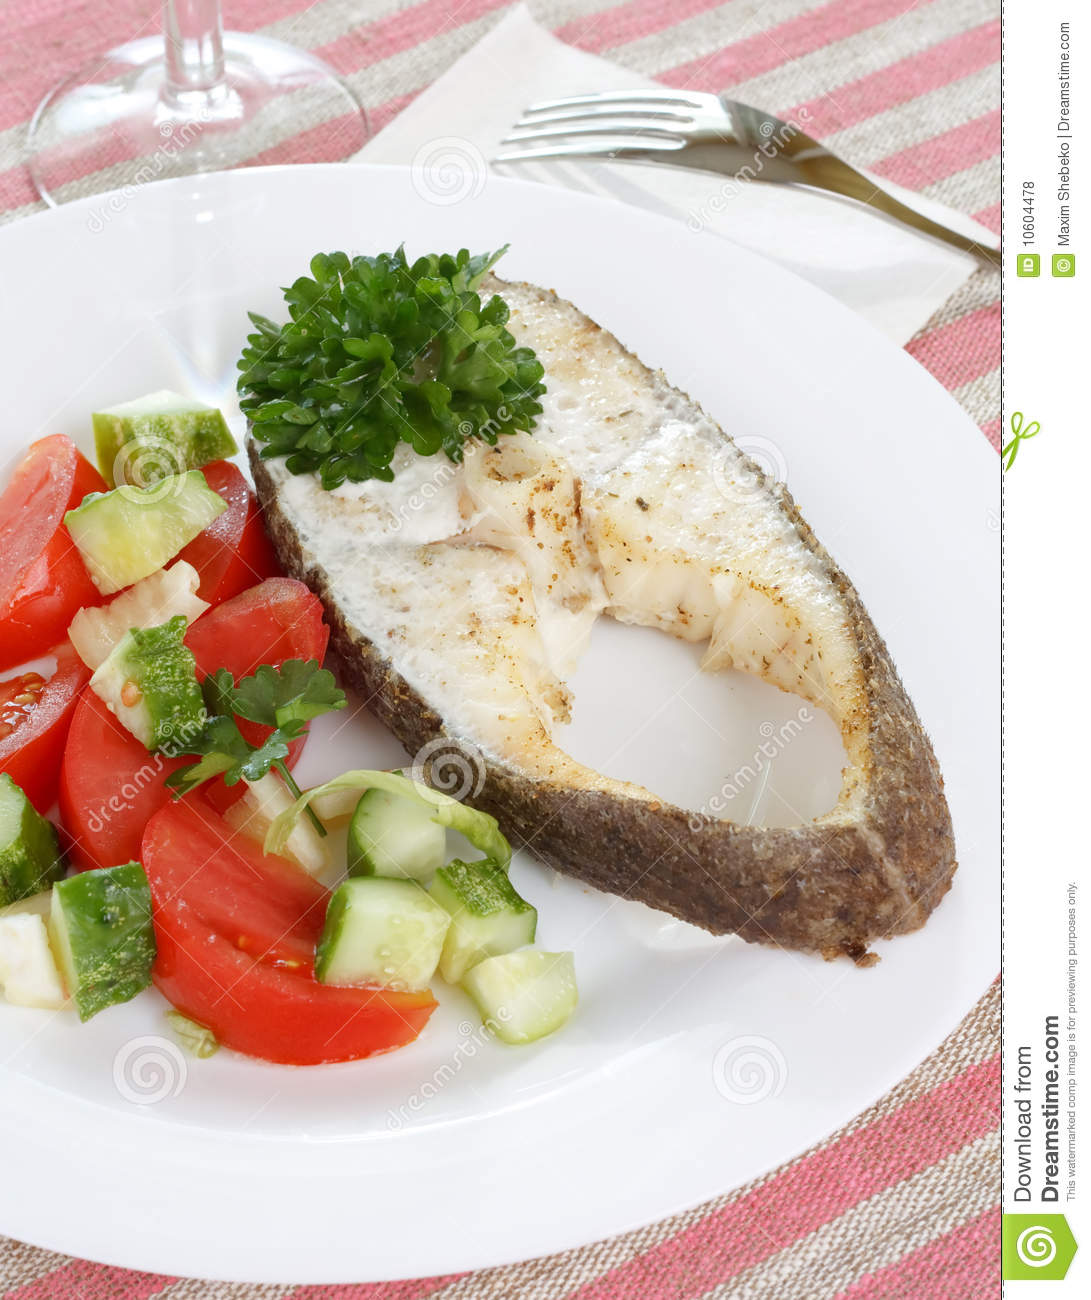 Fish with vegetables royalty free stock photos image for Fish with vegetables